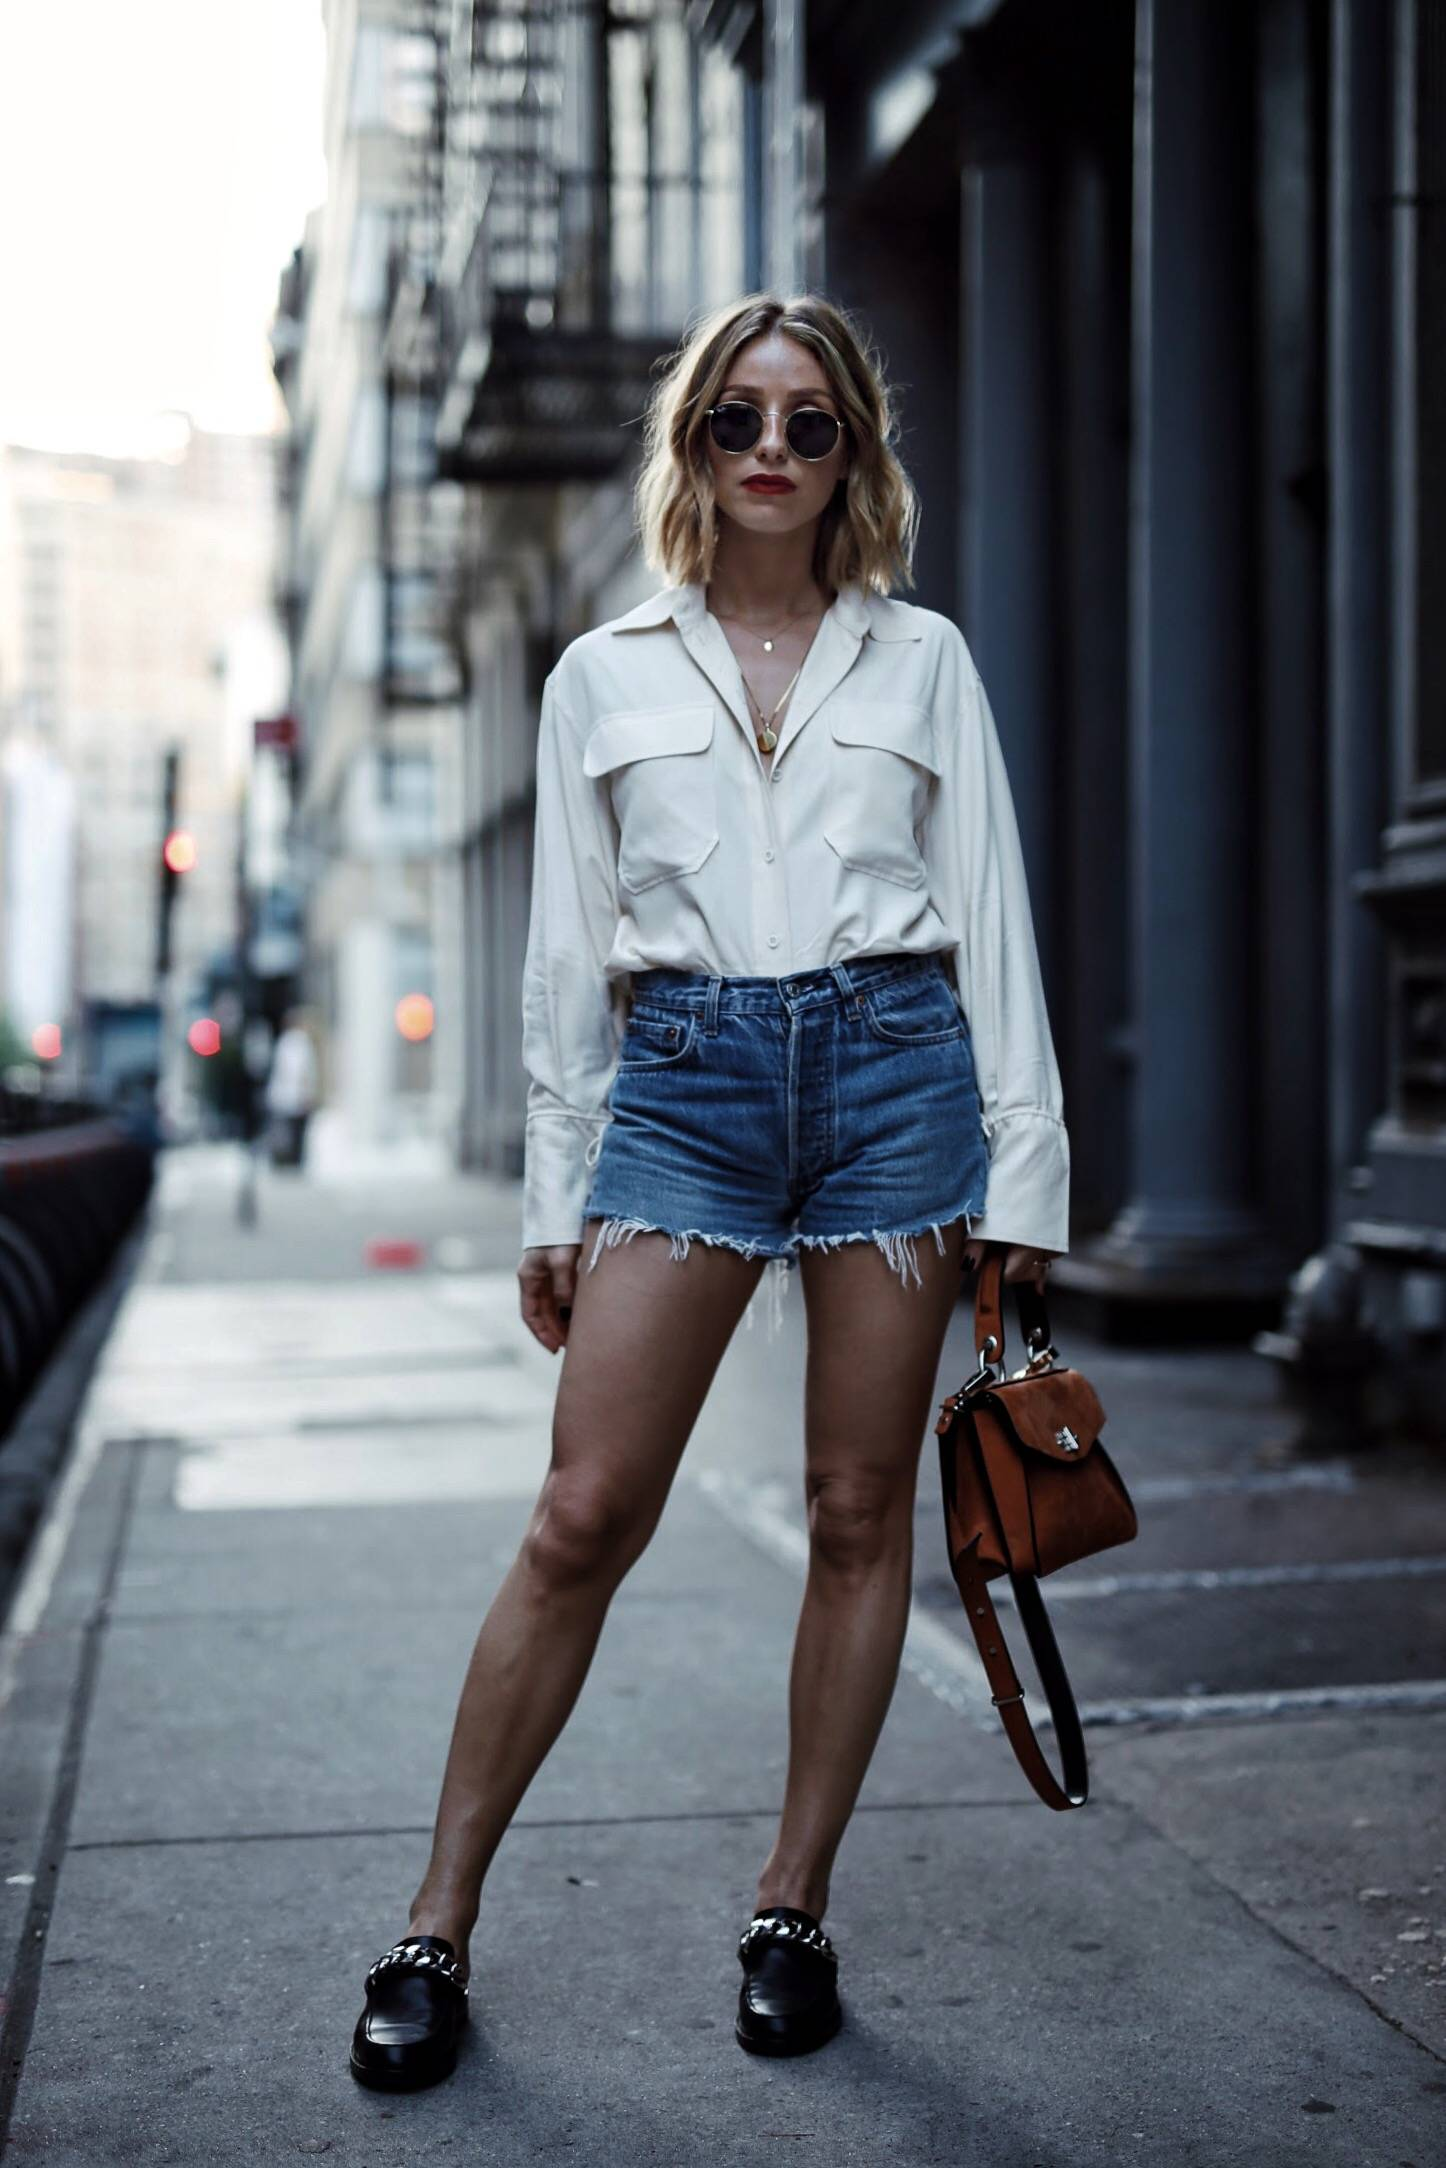 Style and beauty blogger Jill Lansky of the August Diaries on how to dress outside your comfort zone